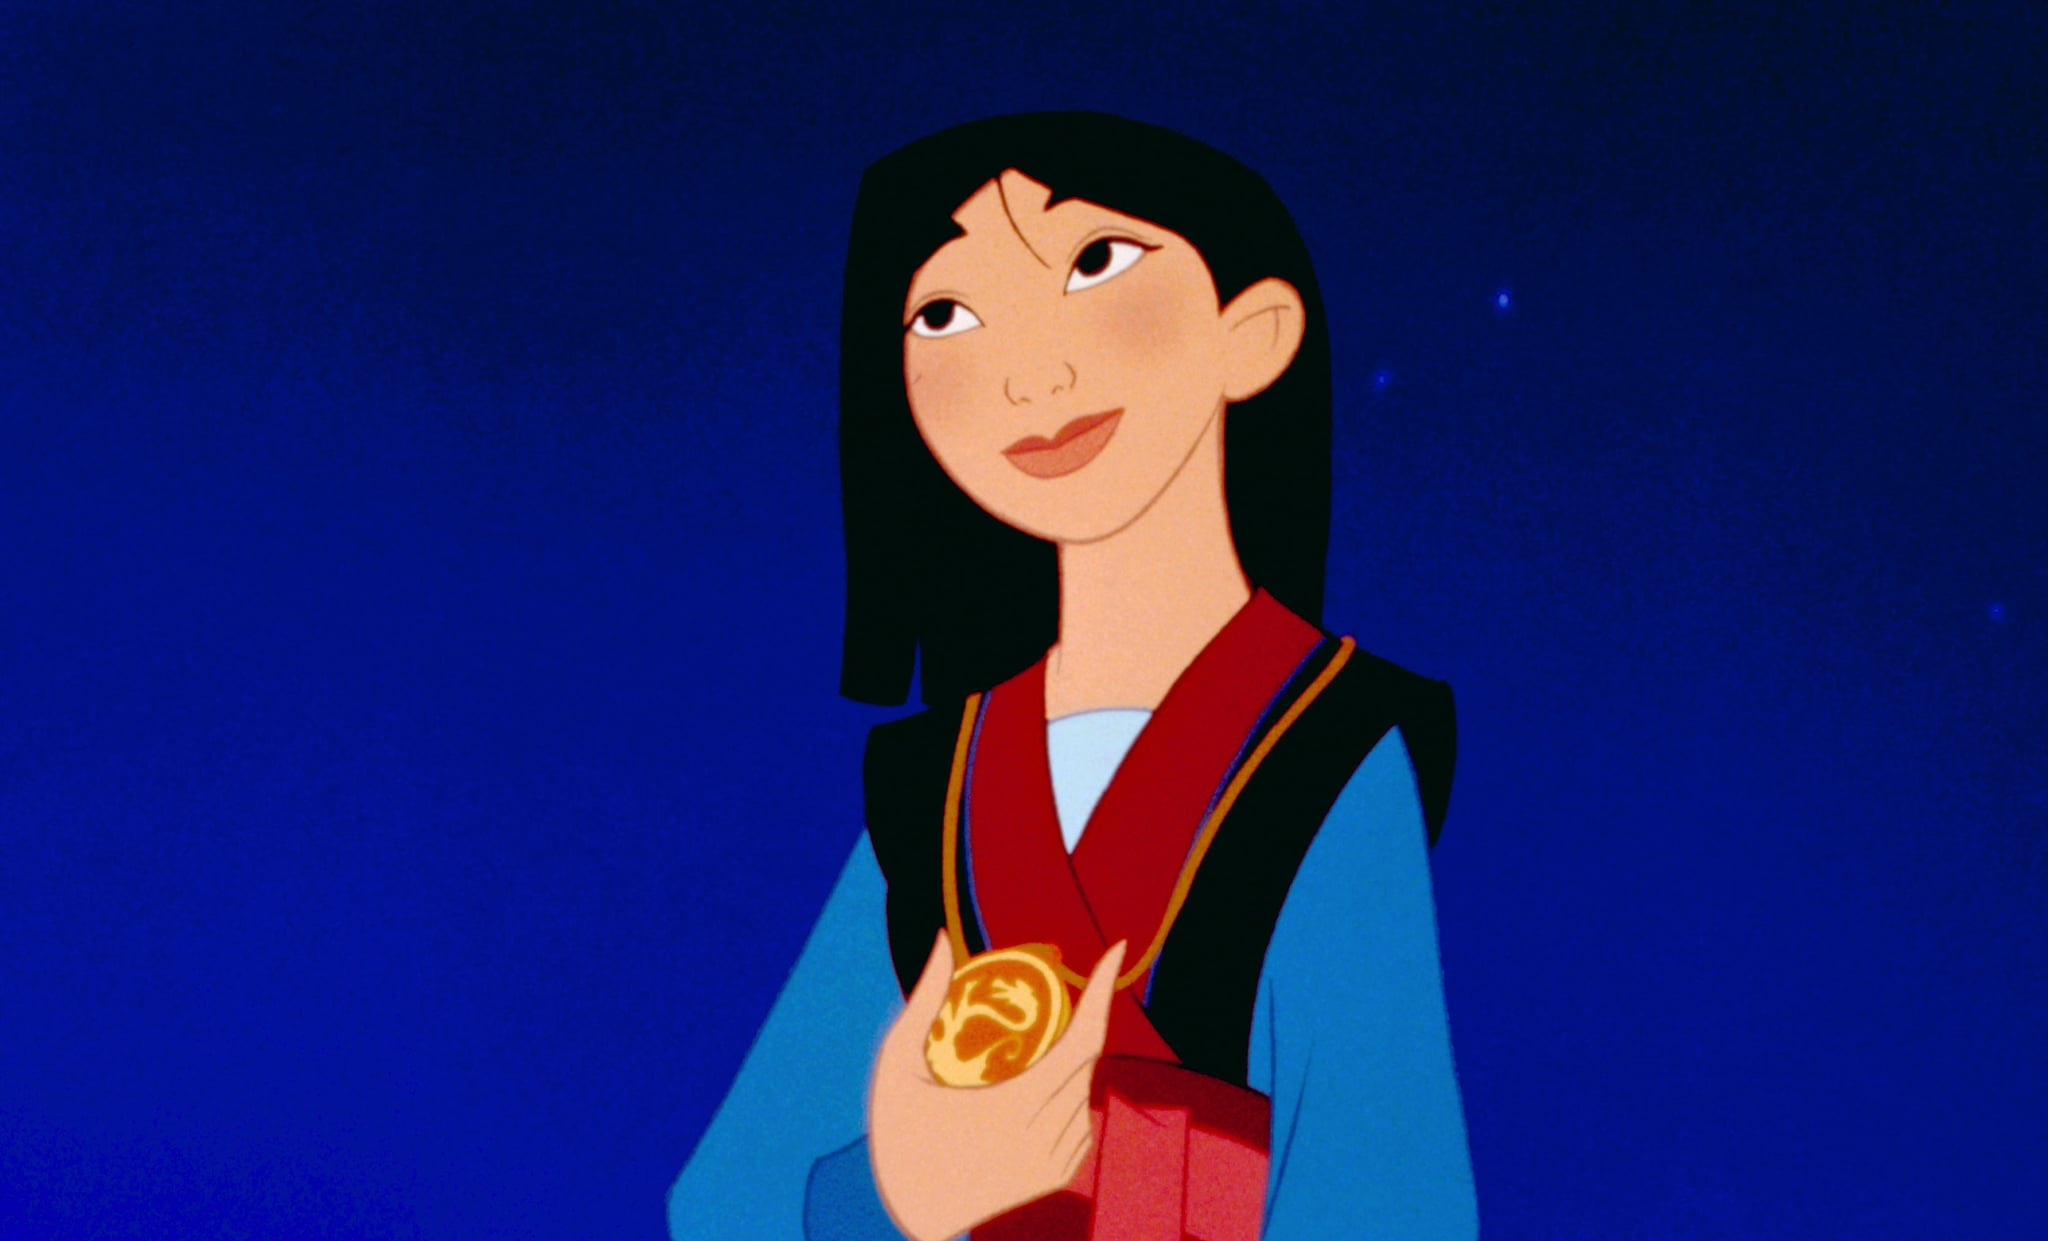 disney s mulan live action movie details popsugar celebrity share this link